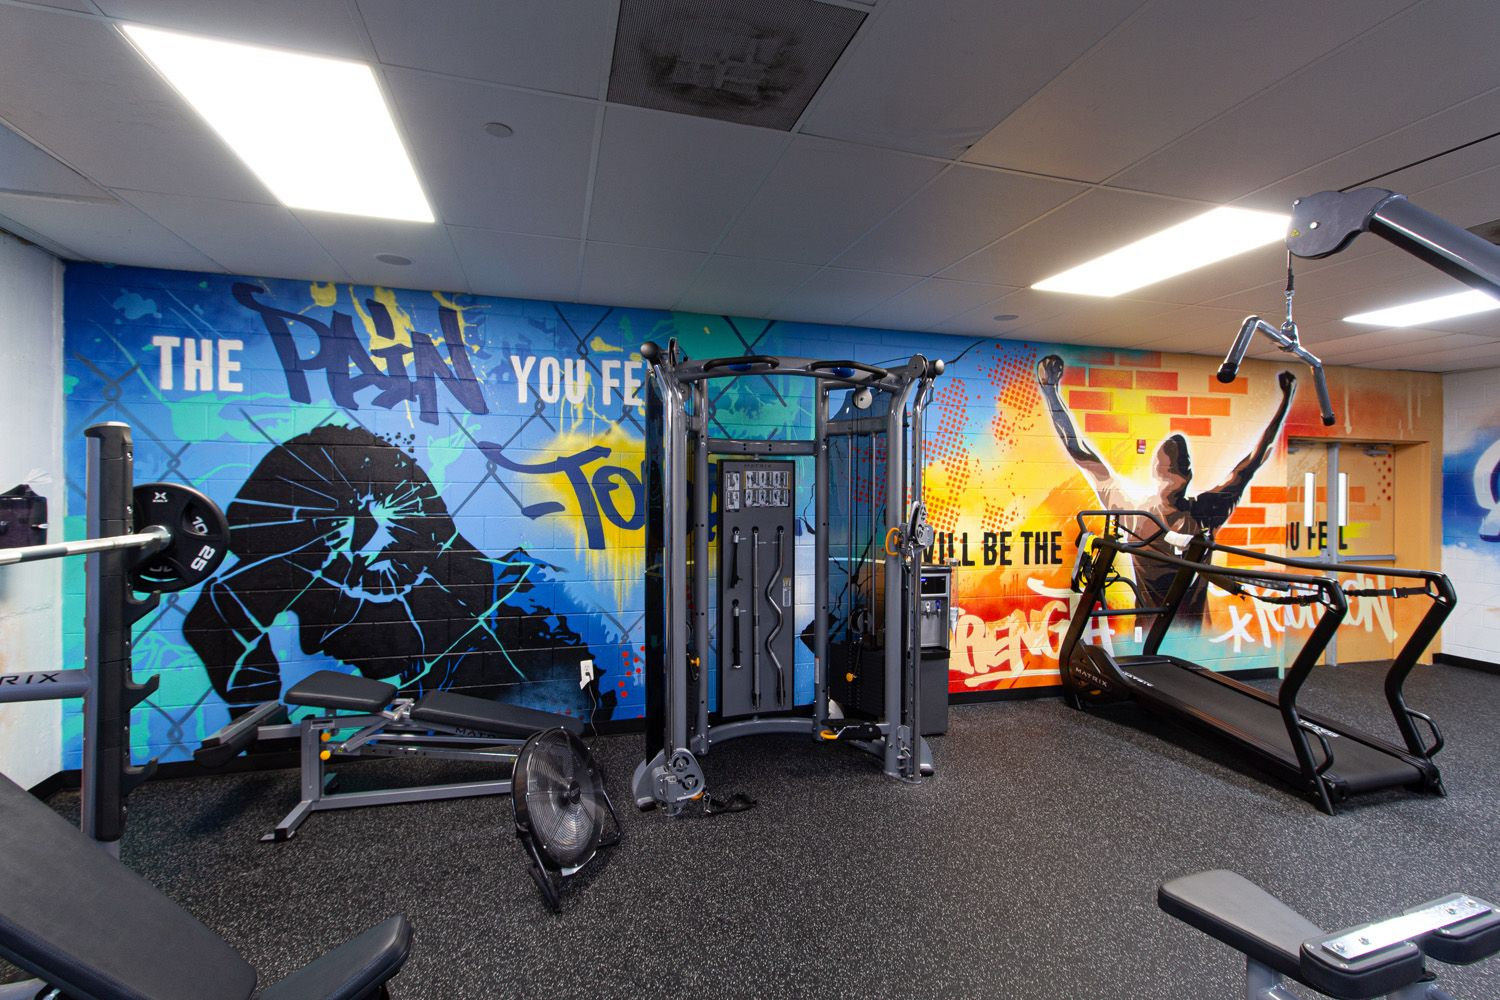 Discovery Institute Gym Graffiti Mural Fitness Center Gym Art Gym Wall Decal Mural